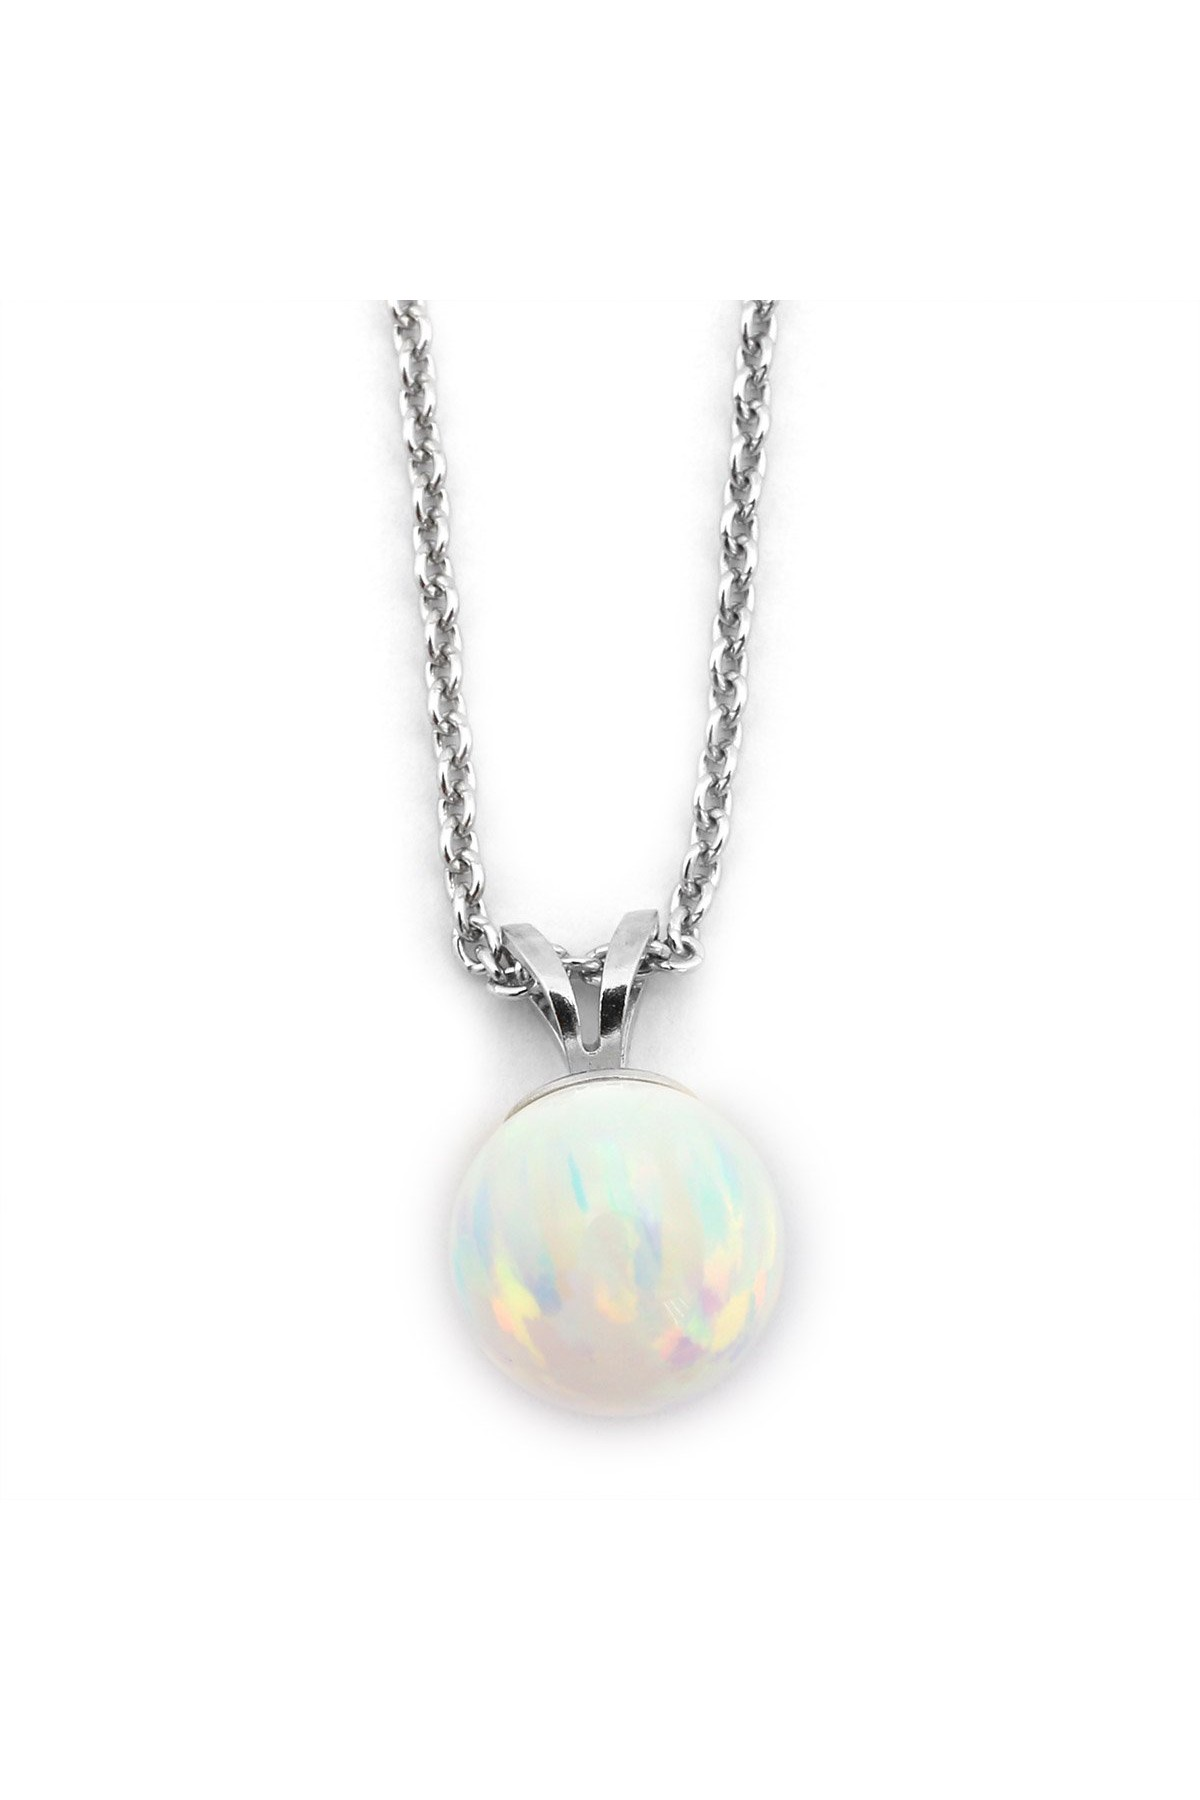 Solid Sterling Silver Rhodium Plated 6 Millimeter Purple Simulated Opal Pendant Necklace